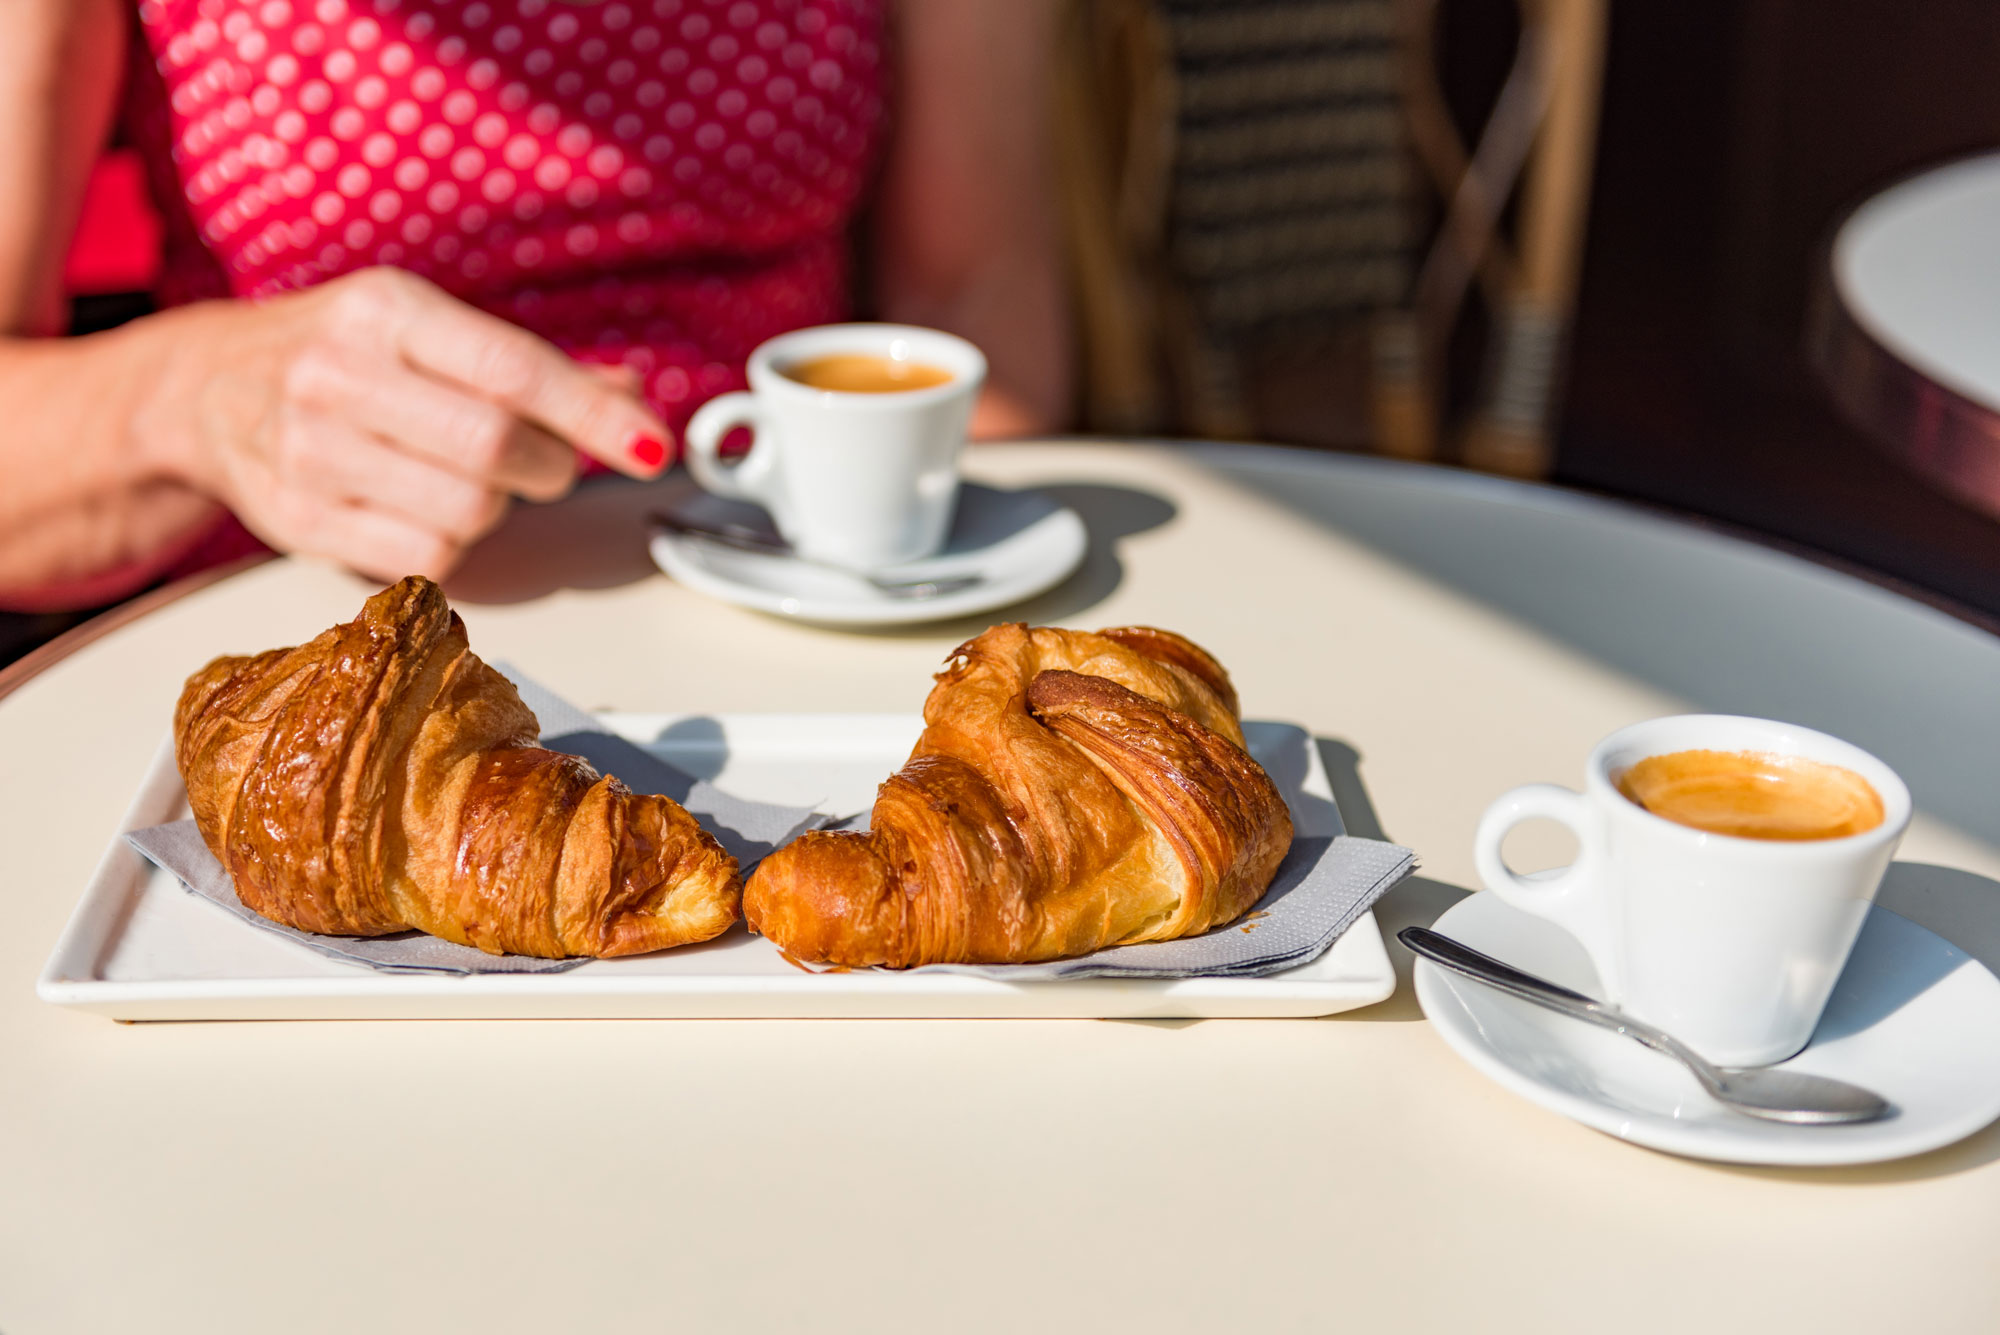 Two croissants on a delicate white dish.